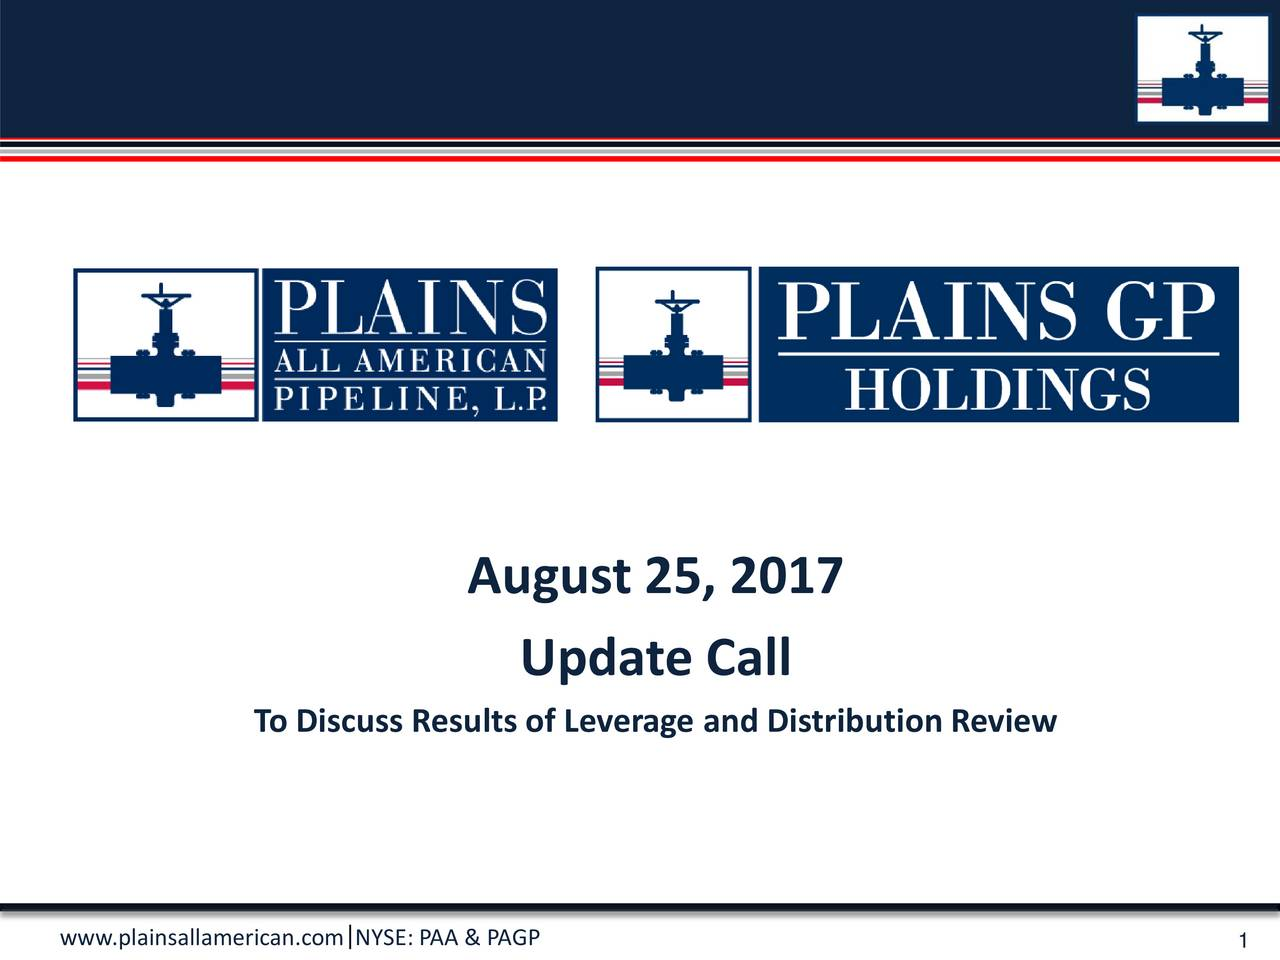 Update Call To Discuss Results of Leverage and Distribution Review